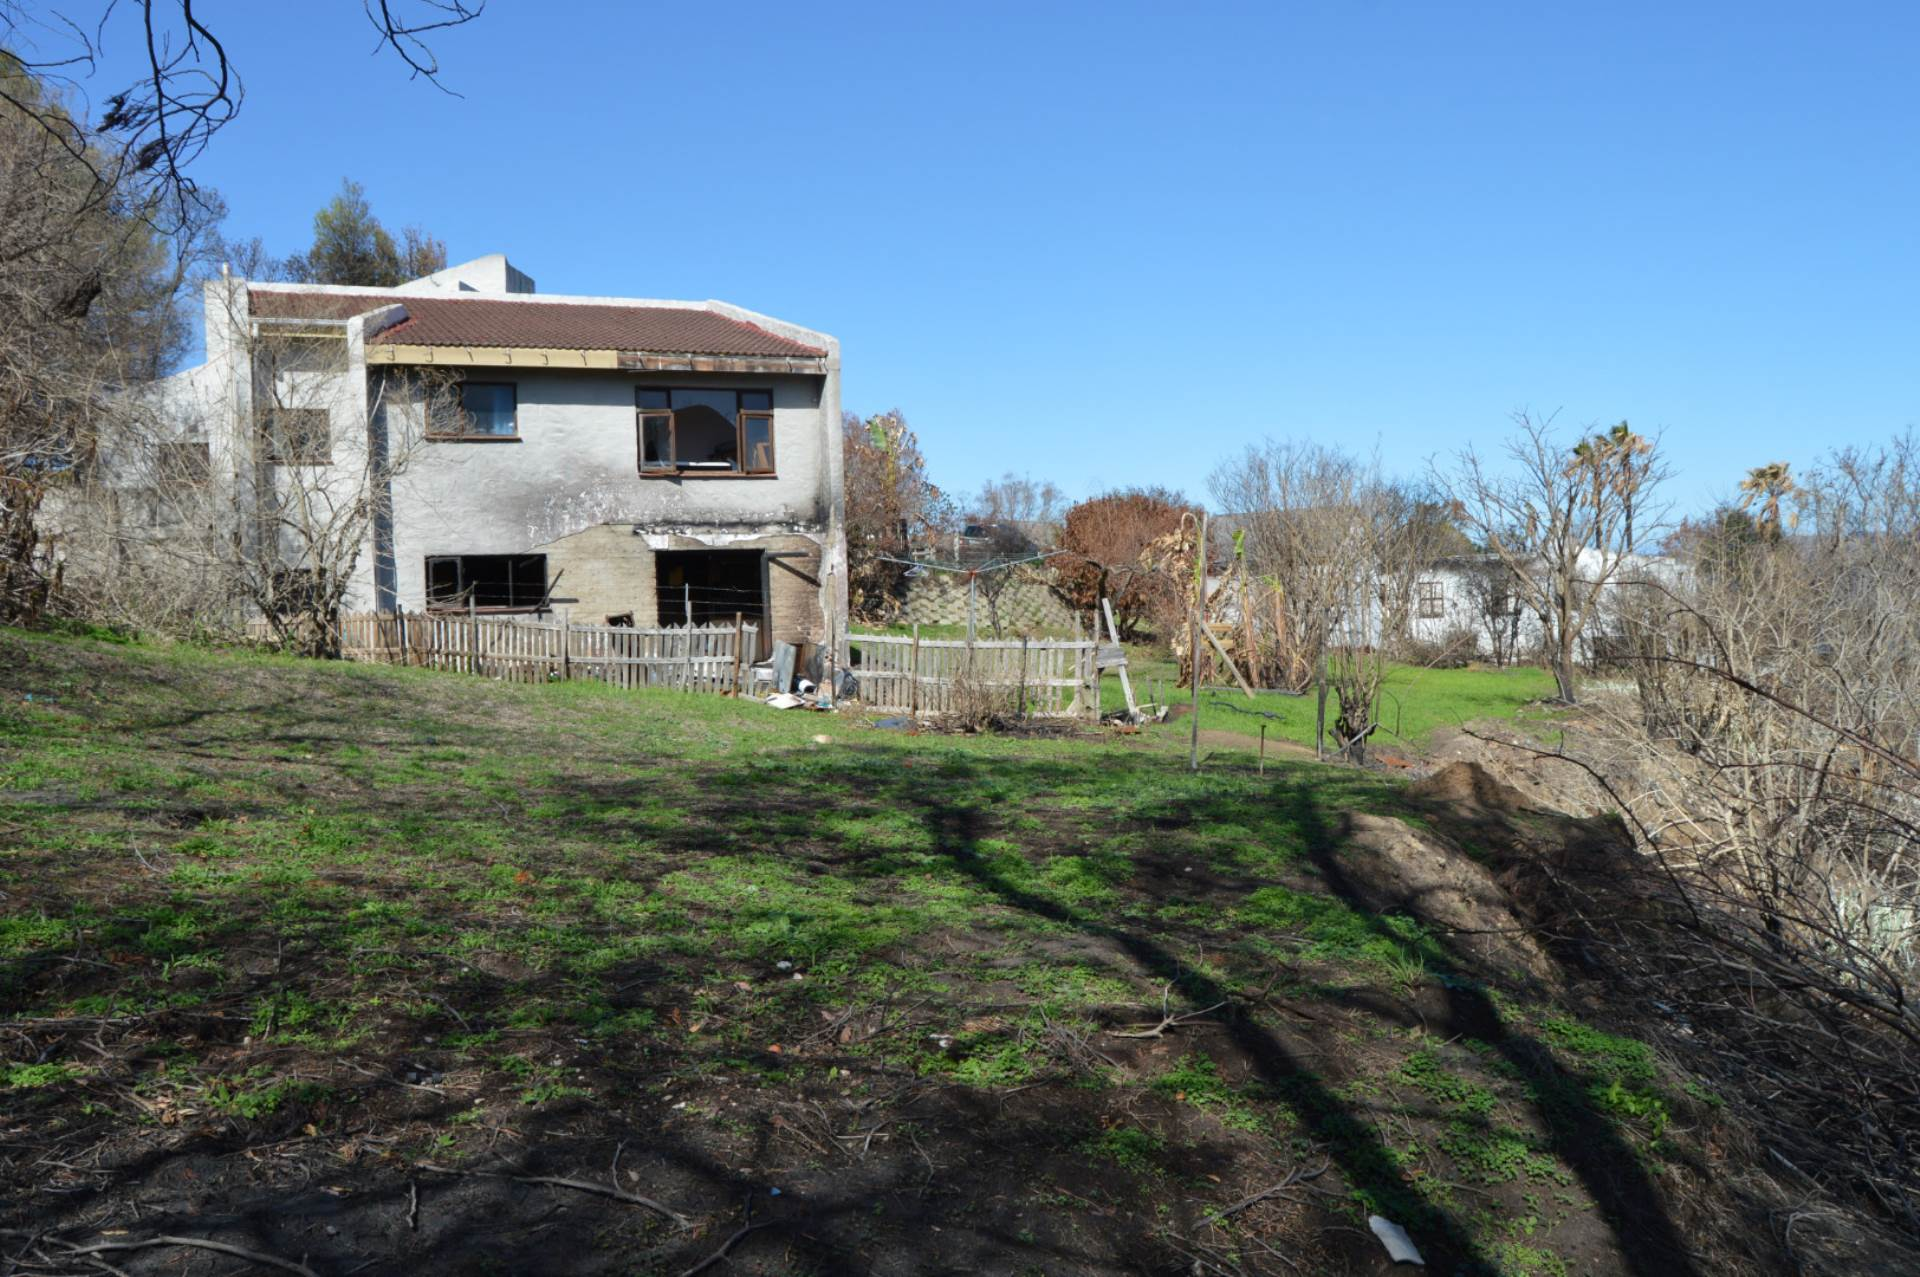 2 BedroomVacant Land Residential For Sale In Upper Town